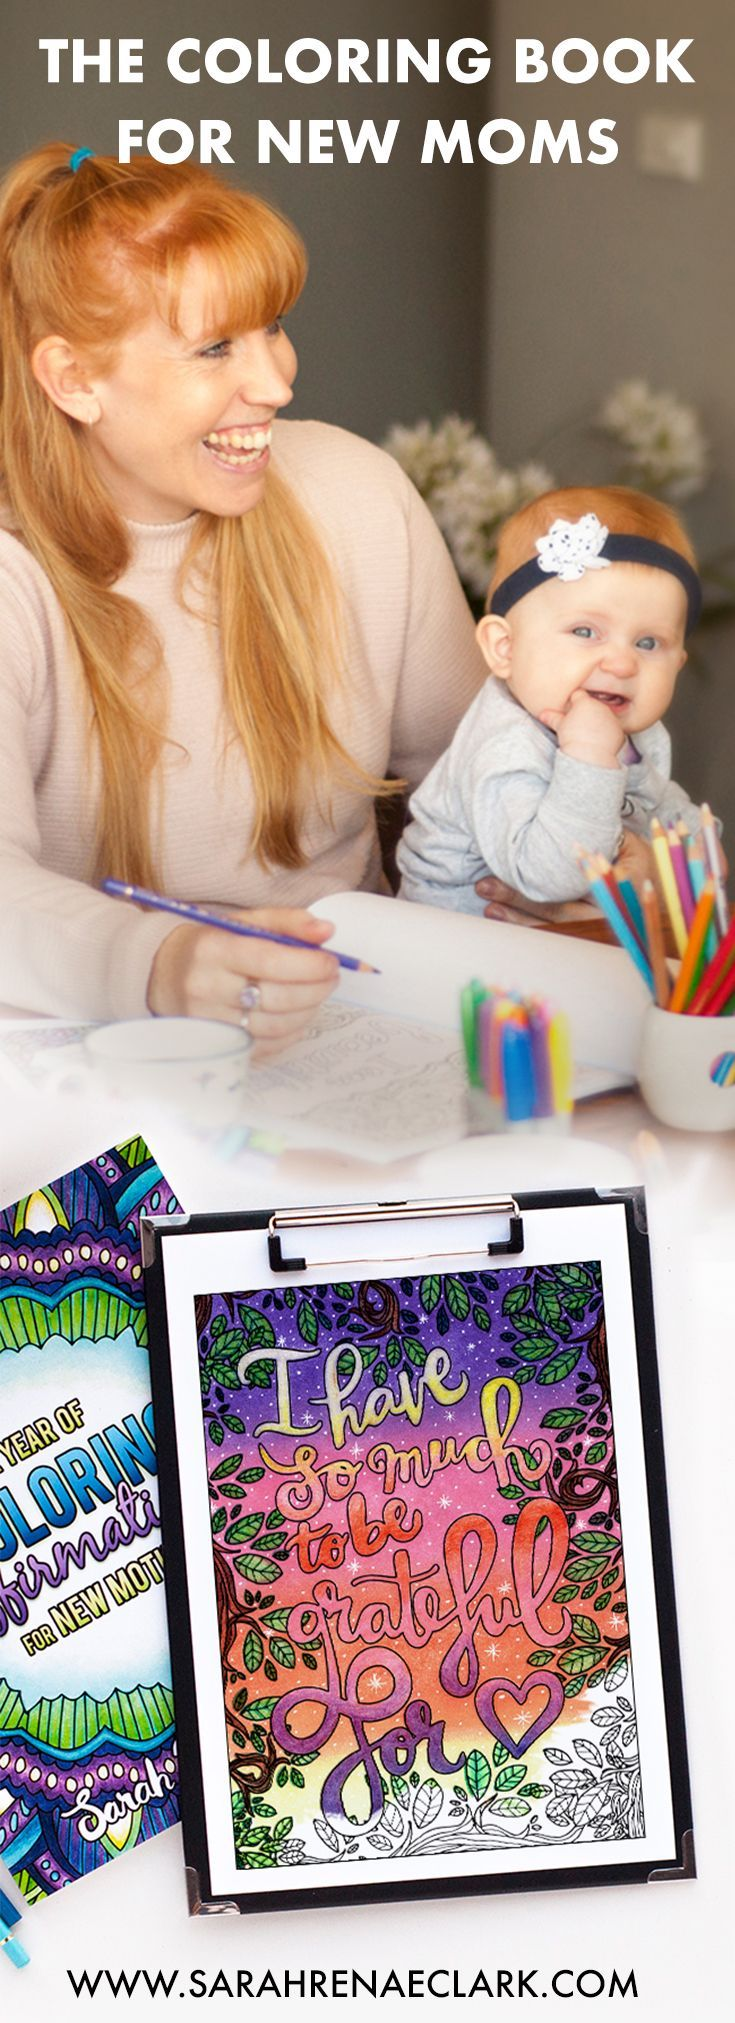 Enjoy a moment of relaxation that fits around your schedule as a new mom. This adult coloring book for new moms is the perfect self-care alternative that encourages you as a mom and nurtures your creative side. Click to find out more!